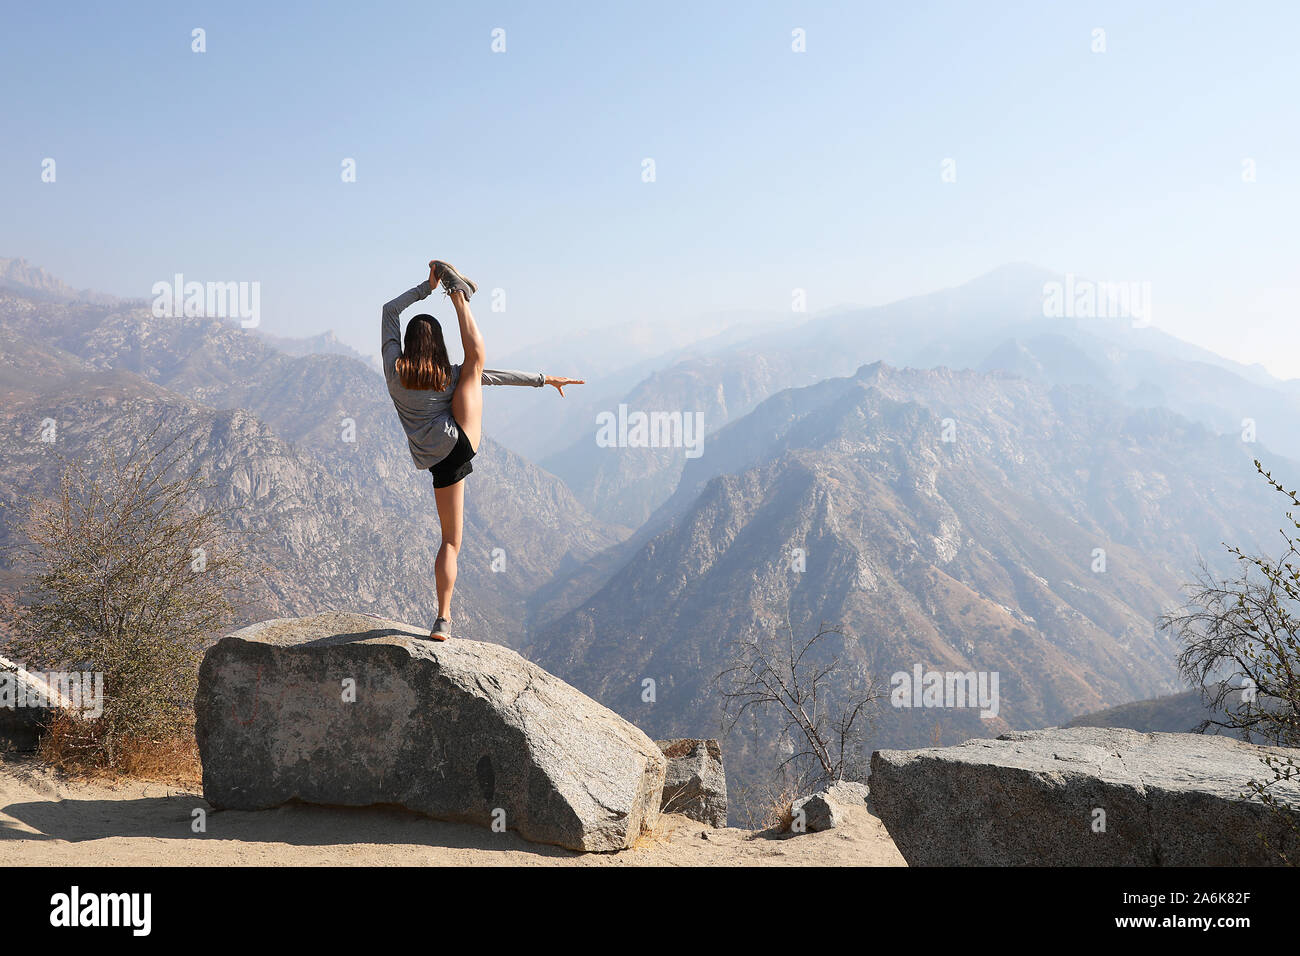 Young female engages in incredible yoga pose in scenic mountain setting. Stock Photo